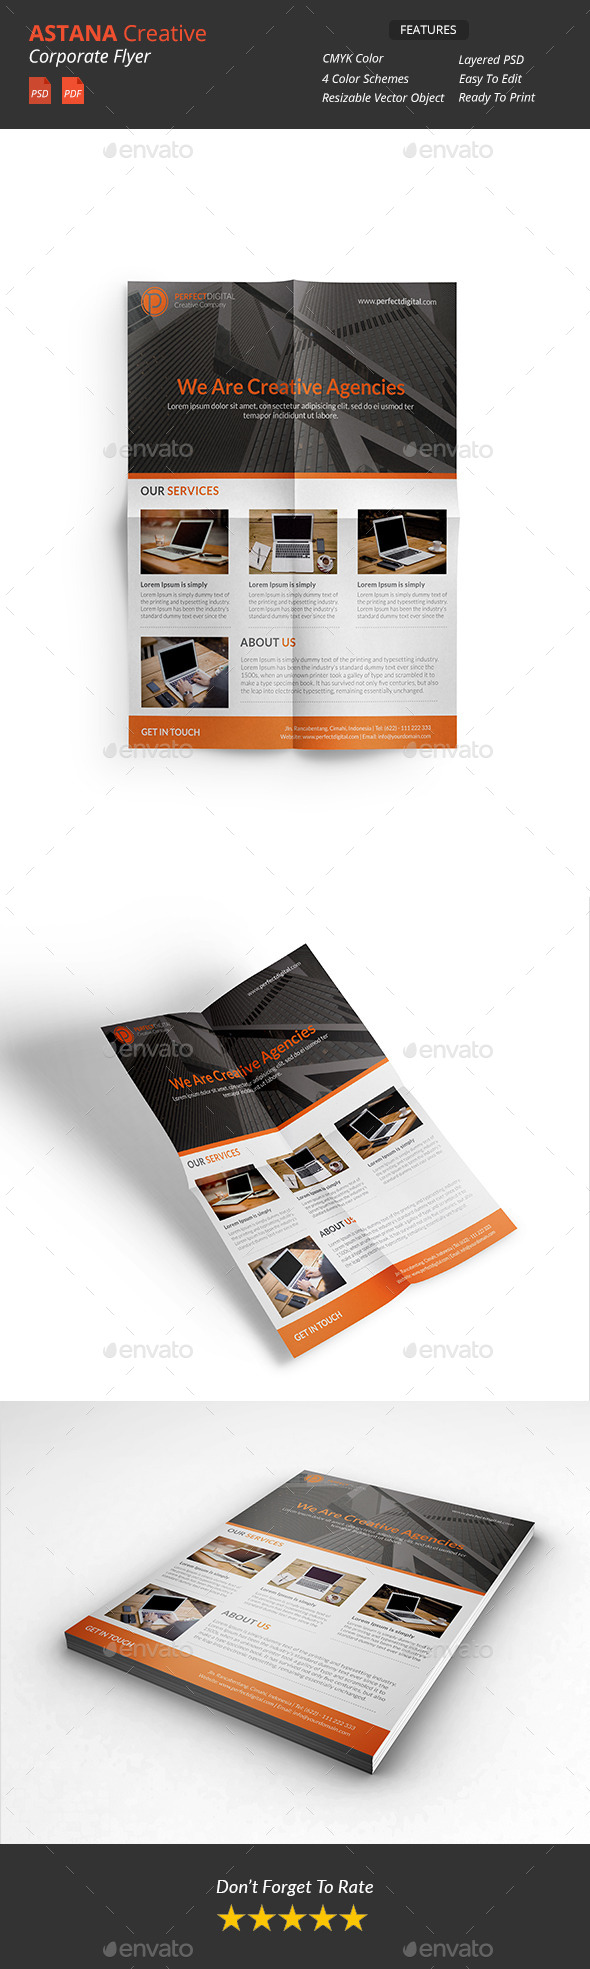 GraphicRiver Astana Creative Corporate Flyers 10833677